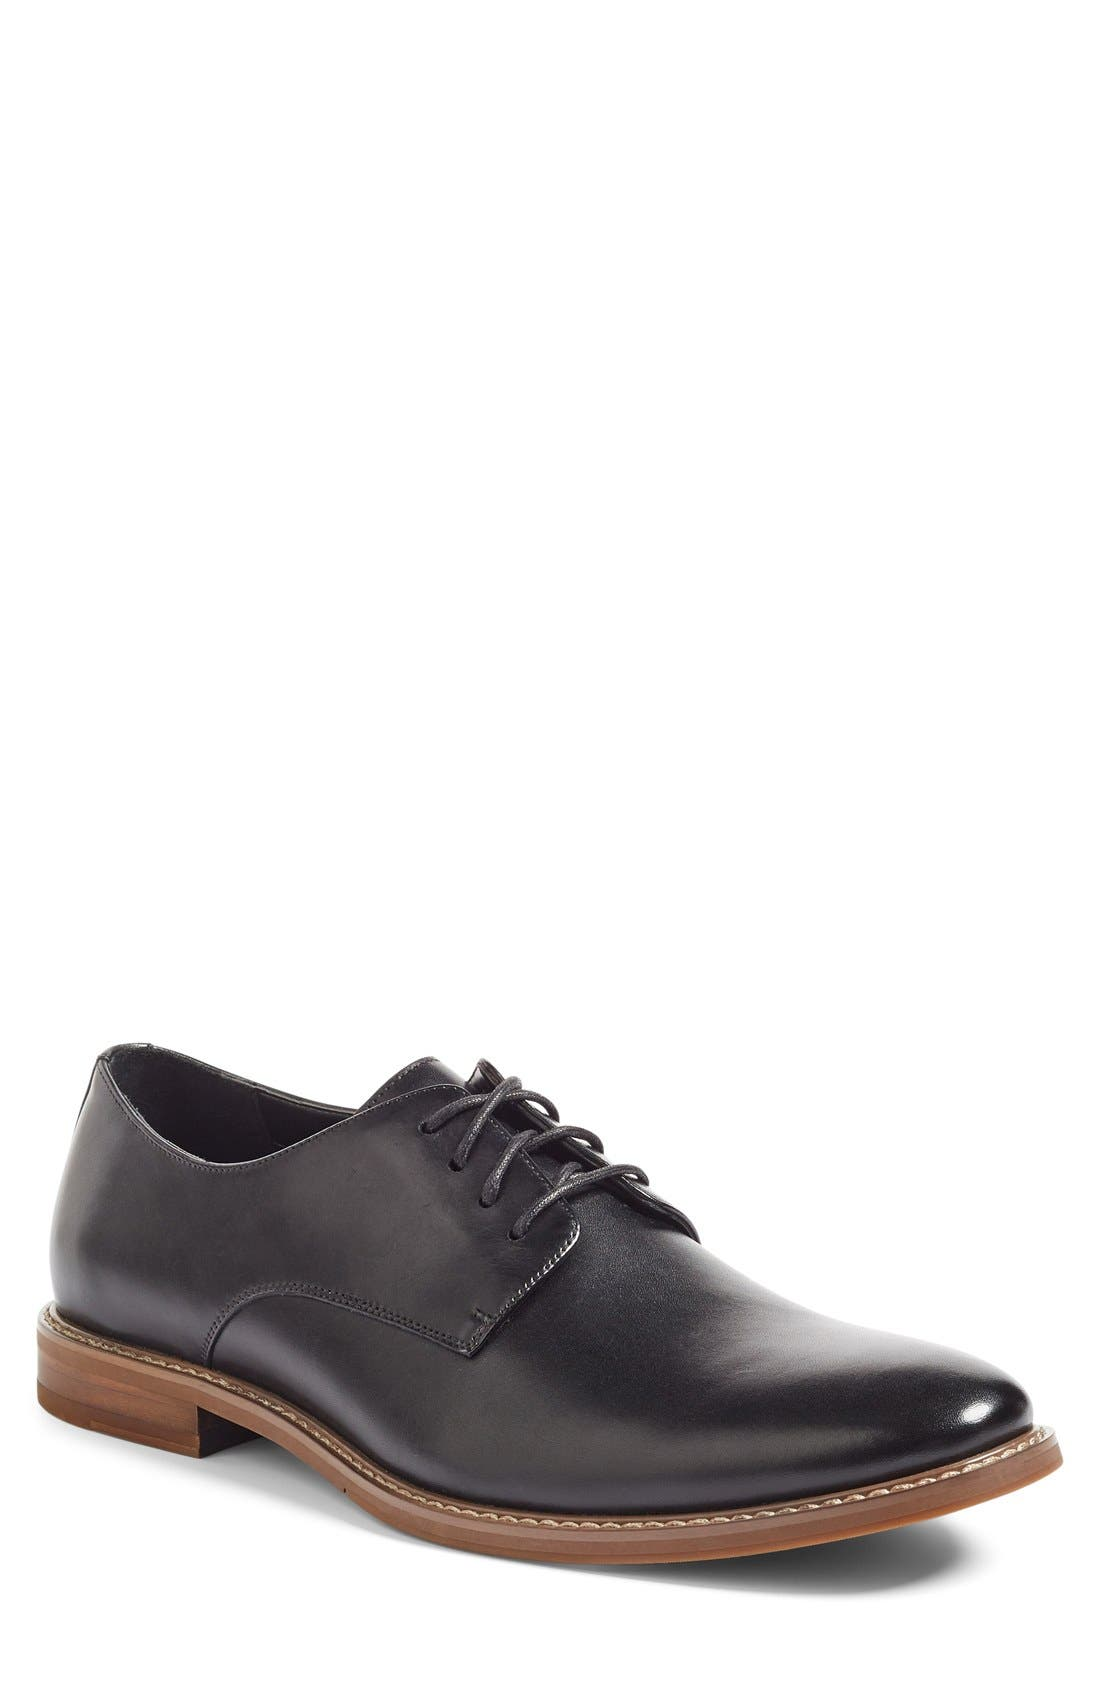 Everett Plain Toe Derby,                             Main thumbnail 1, color,                             BLACK LEATHER